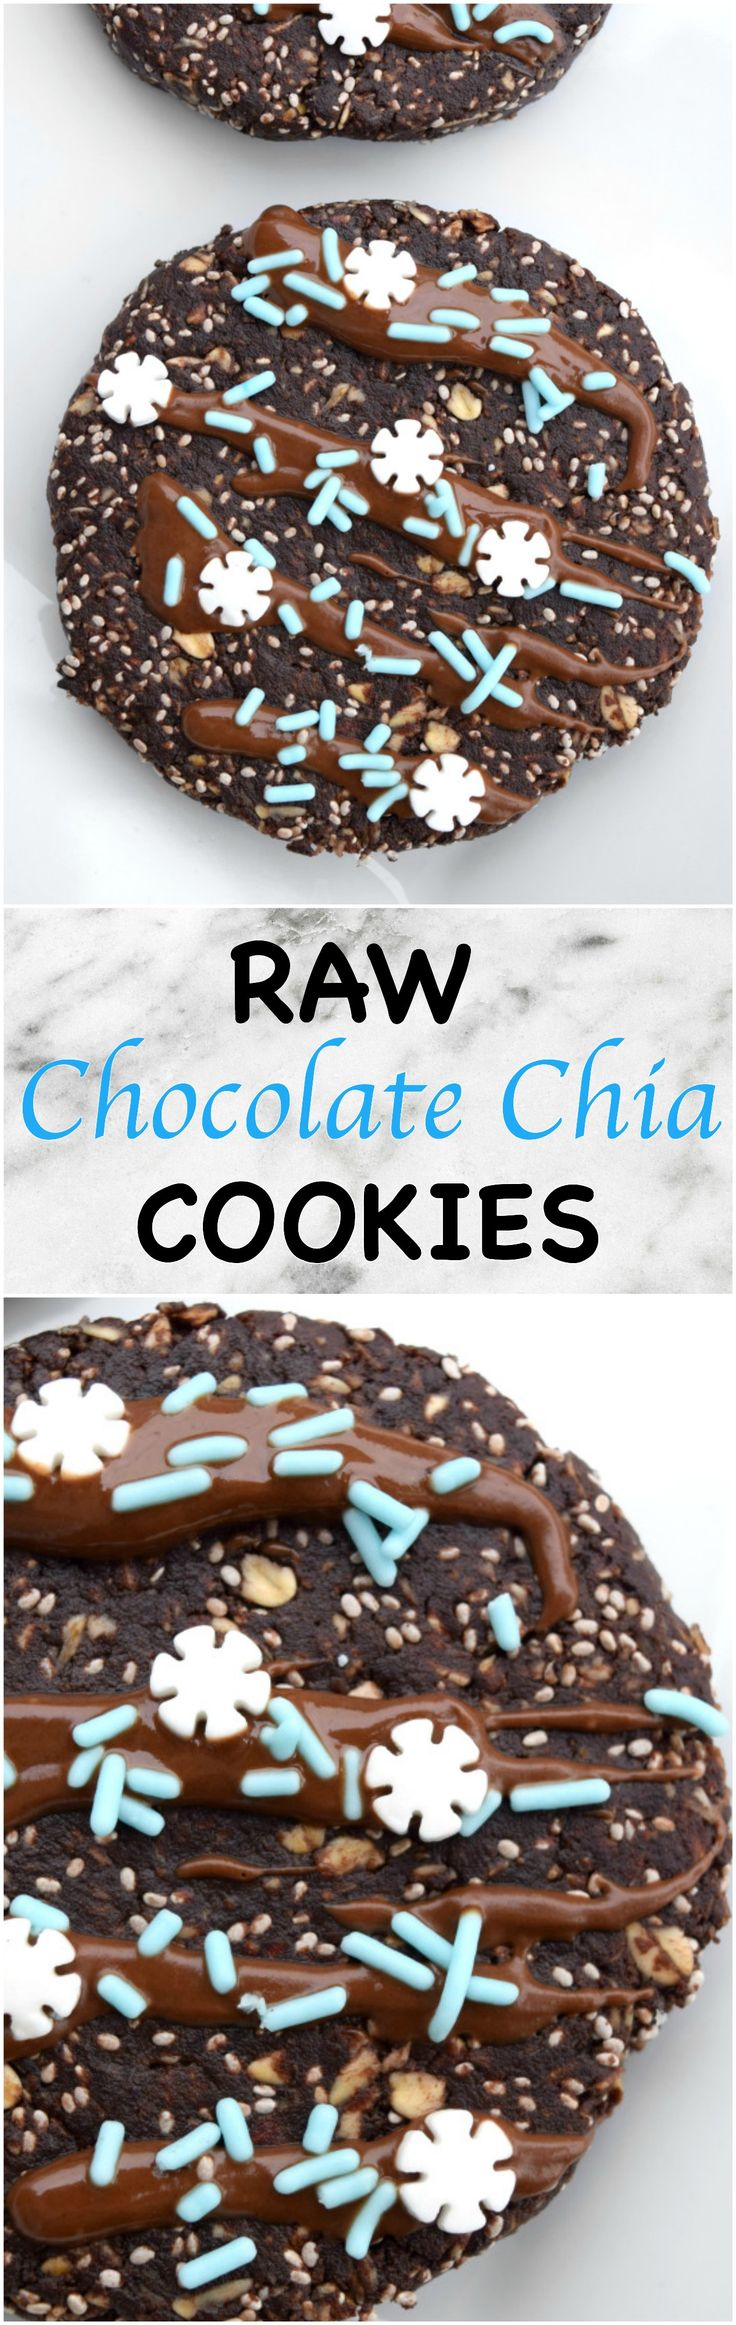 Quick and easy chocolate chia cookies! PERFECT for breakfast, a snack or dessert!